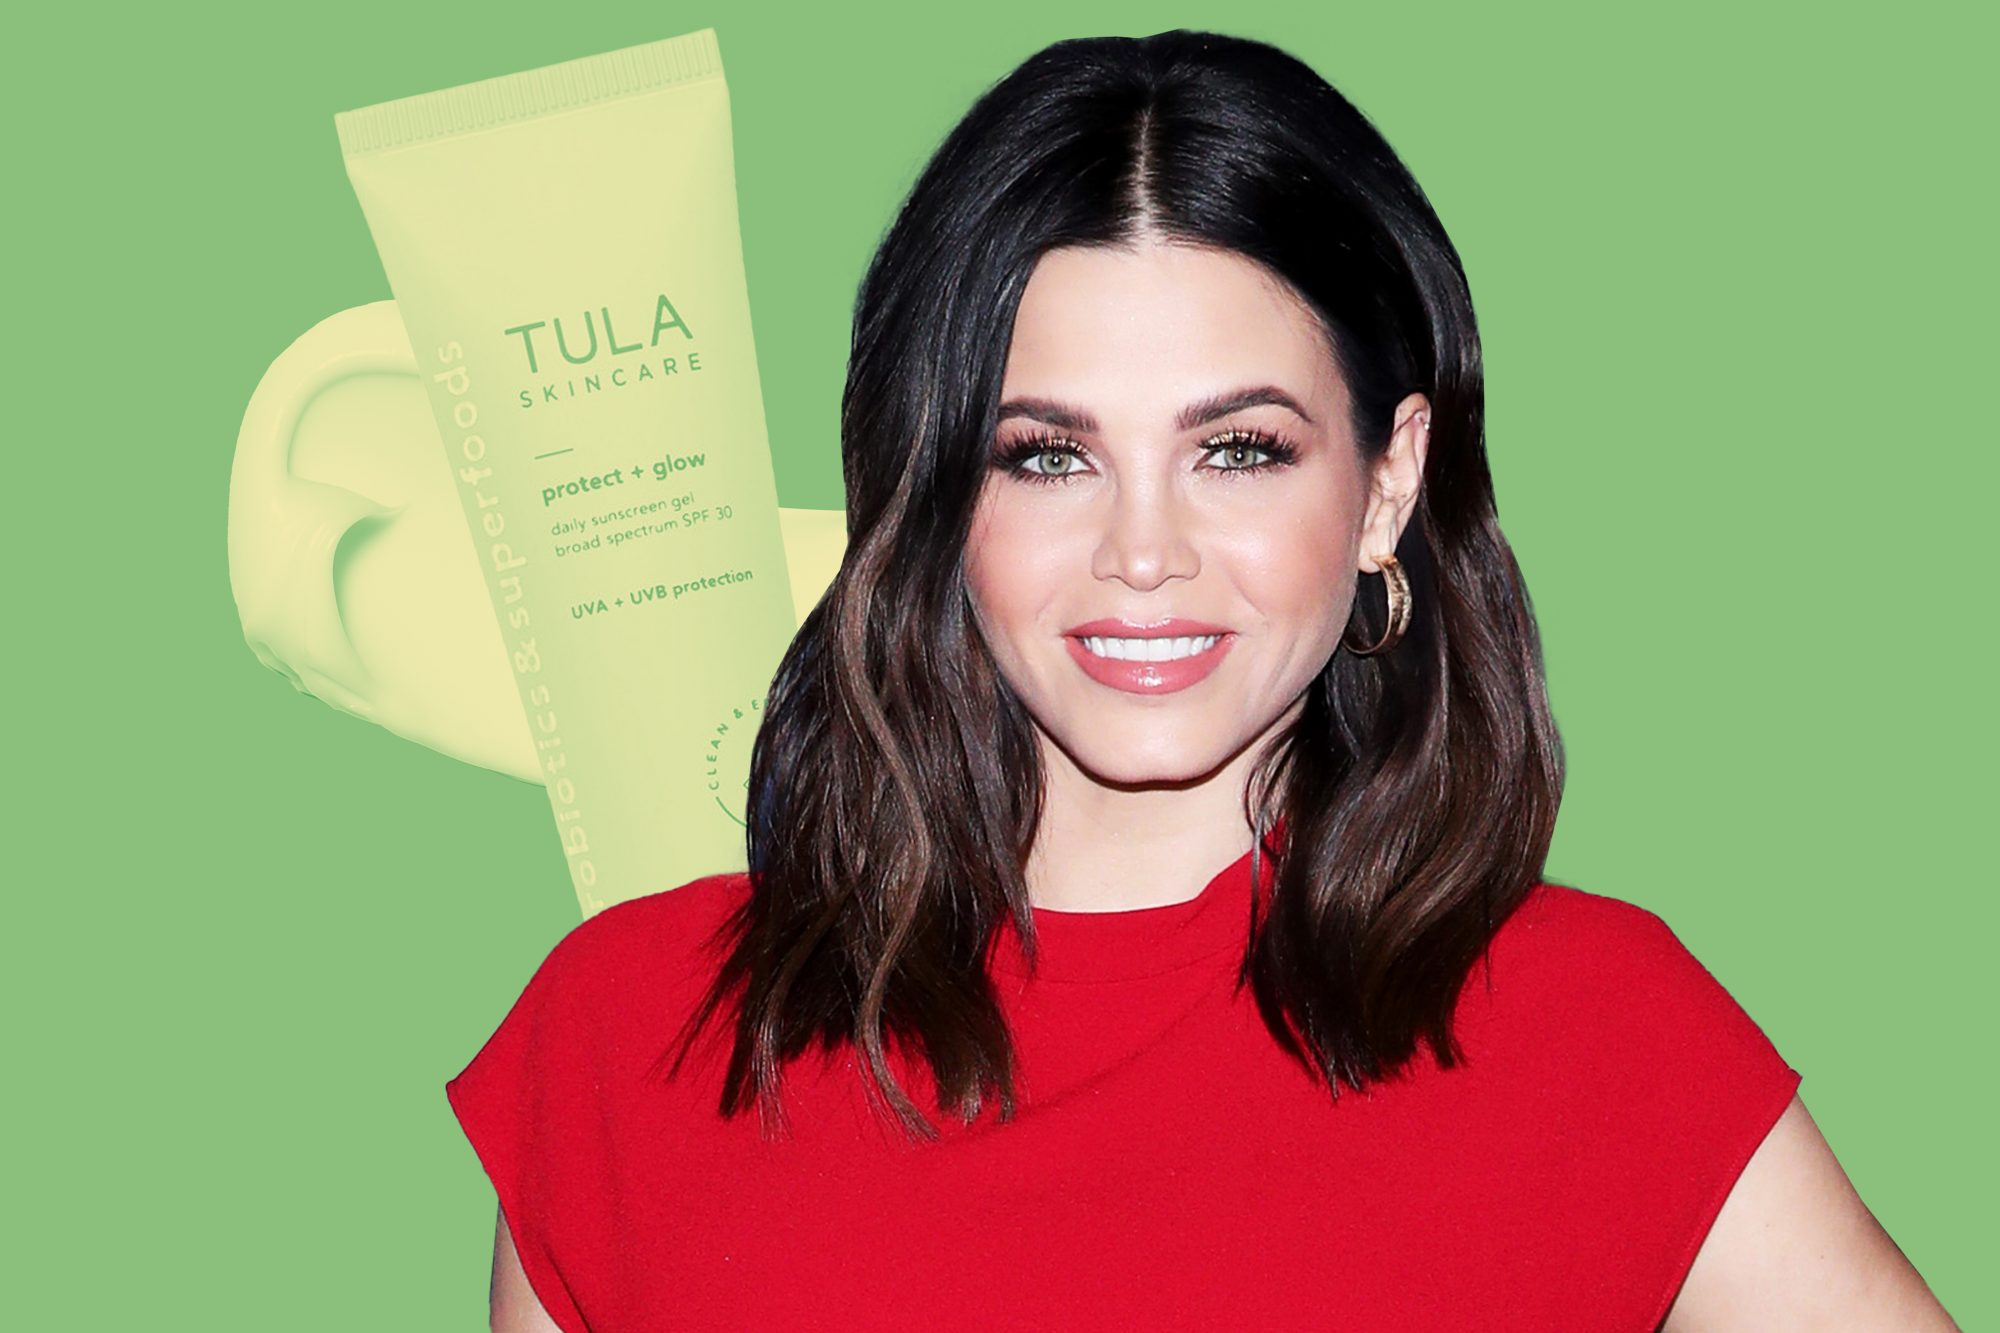 Jenna-Dewan-Approved-Sunscreen-Is-Behind-Her-Perpetual-Glow-GettyImages-1198151155